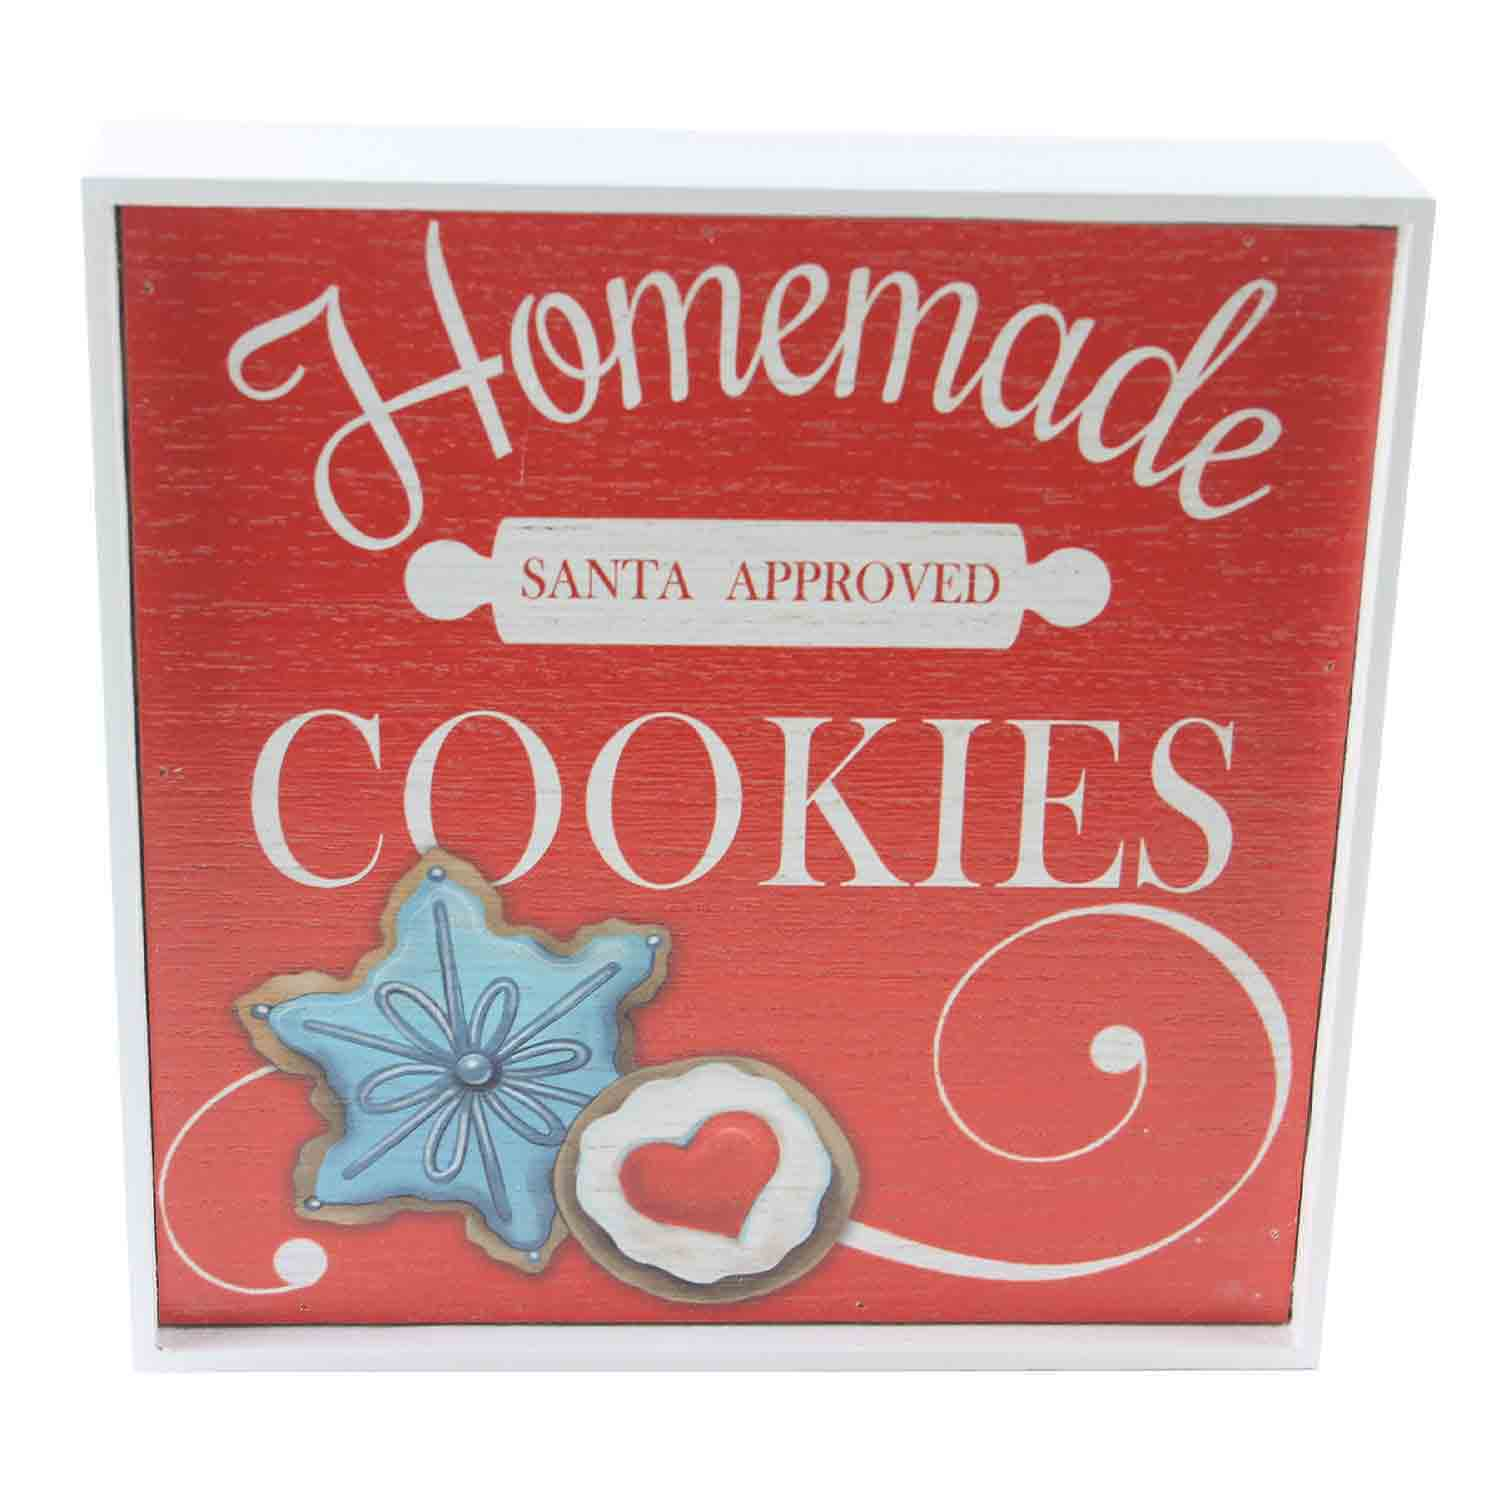 Santa Approved Homemade Cookies Box Sign